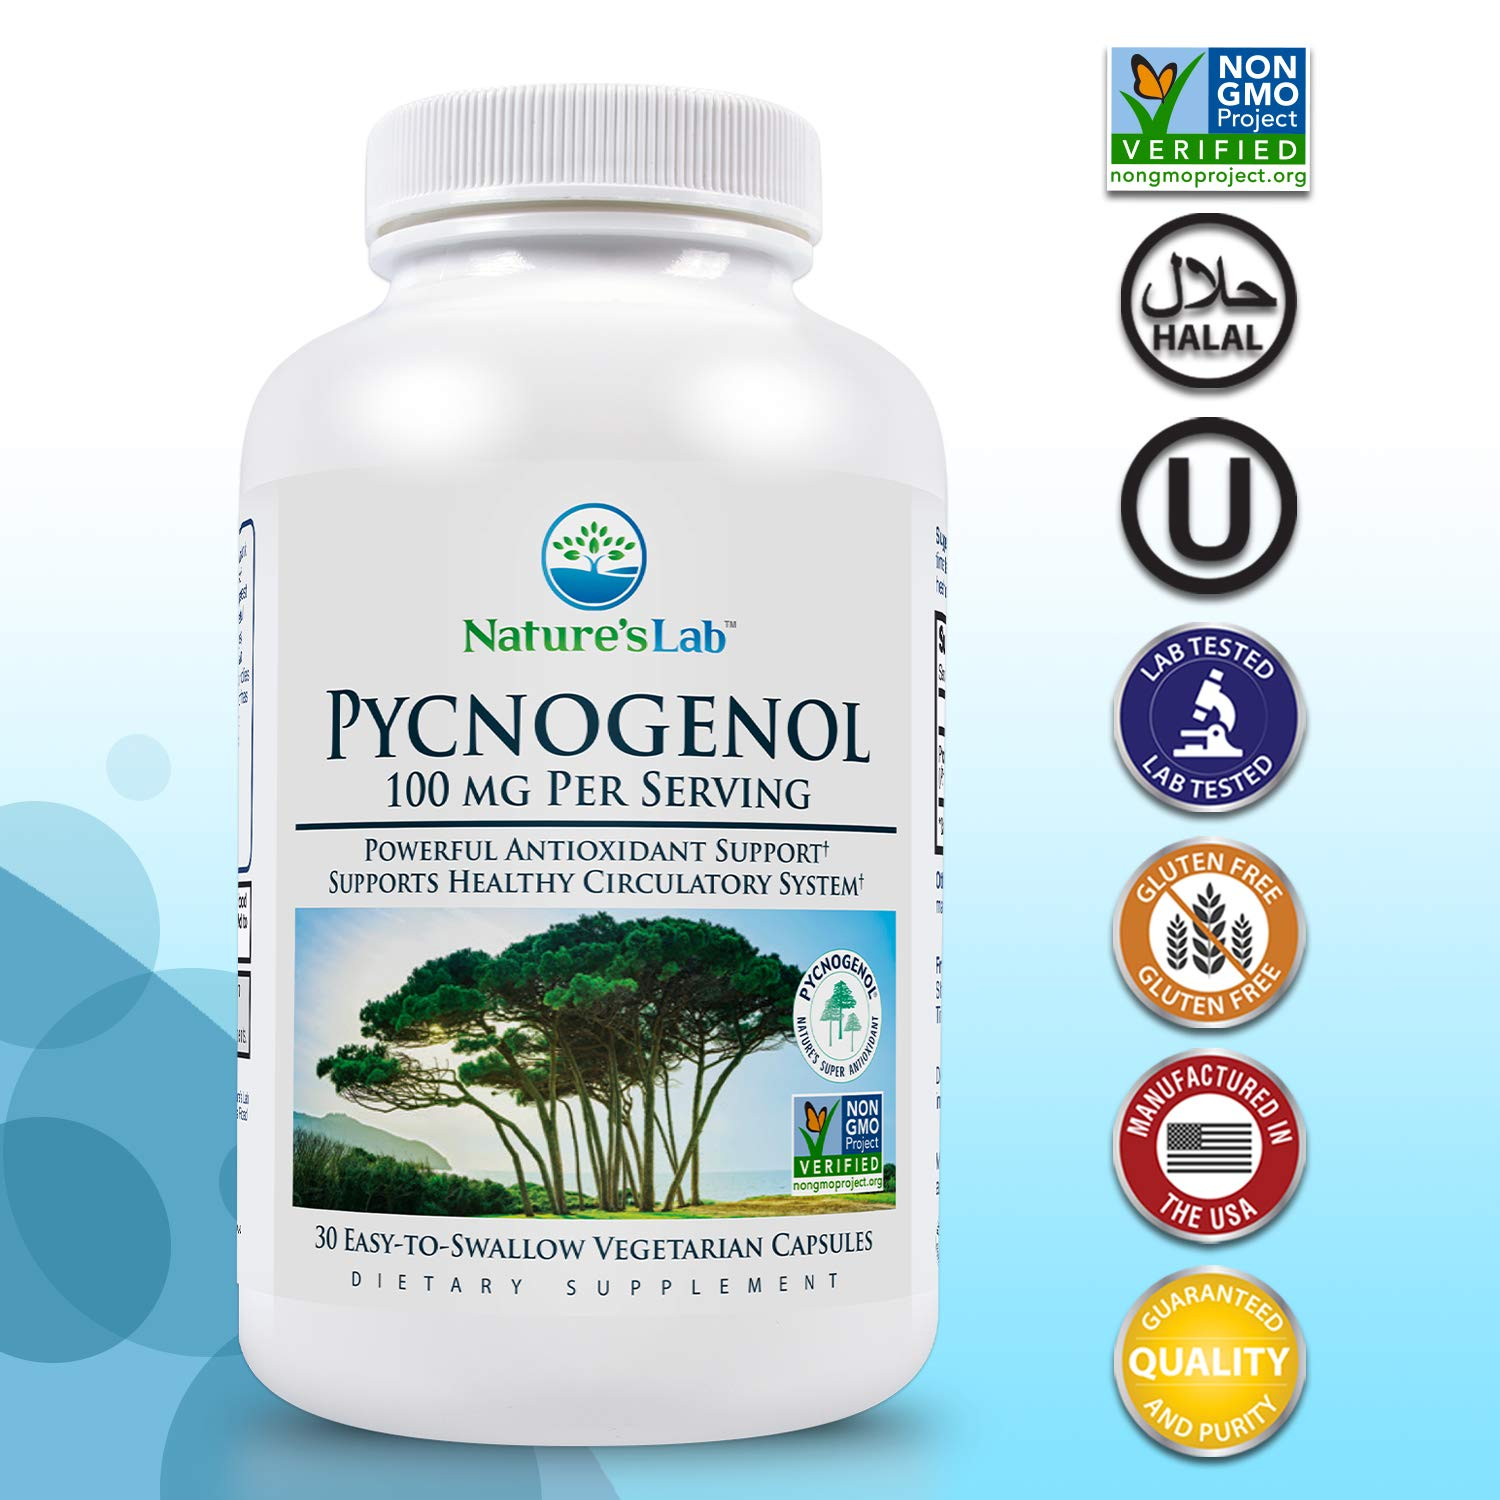 Nature's Lab Pycnogenol 100mg - 30 Capsules (1 Month Supply) for Circulation Blood Pressure Joint & Skin Health by Nature's Lab